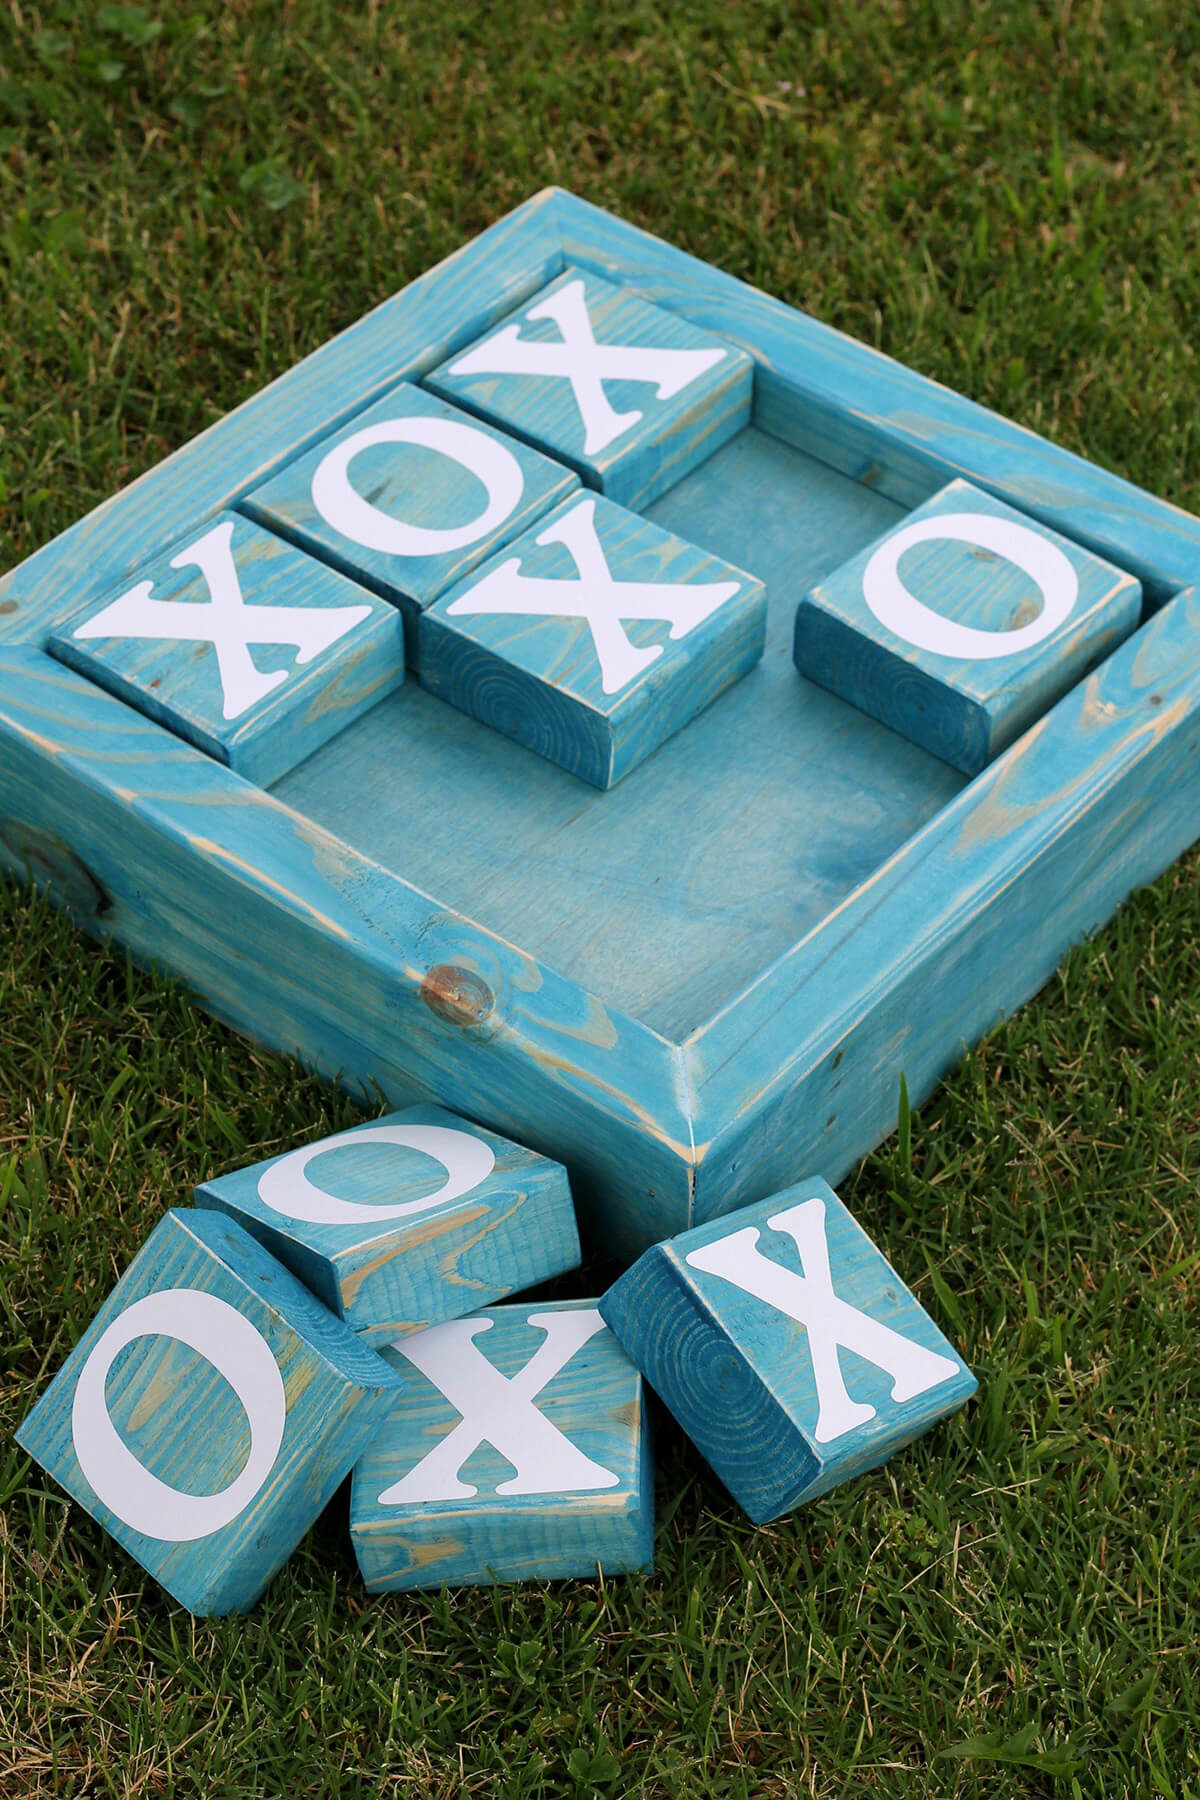 Cool Jumbo Tic Tac Toe